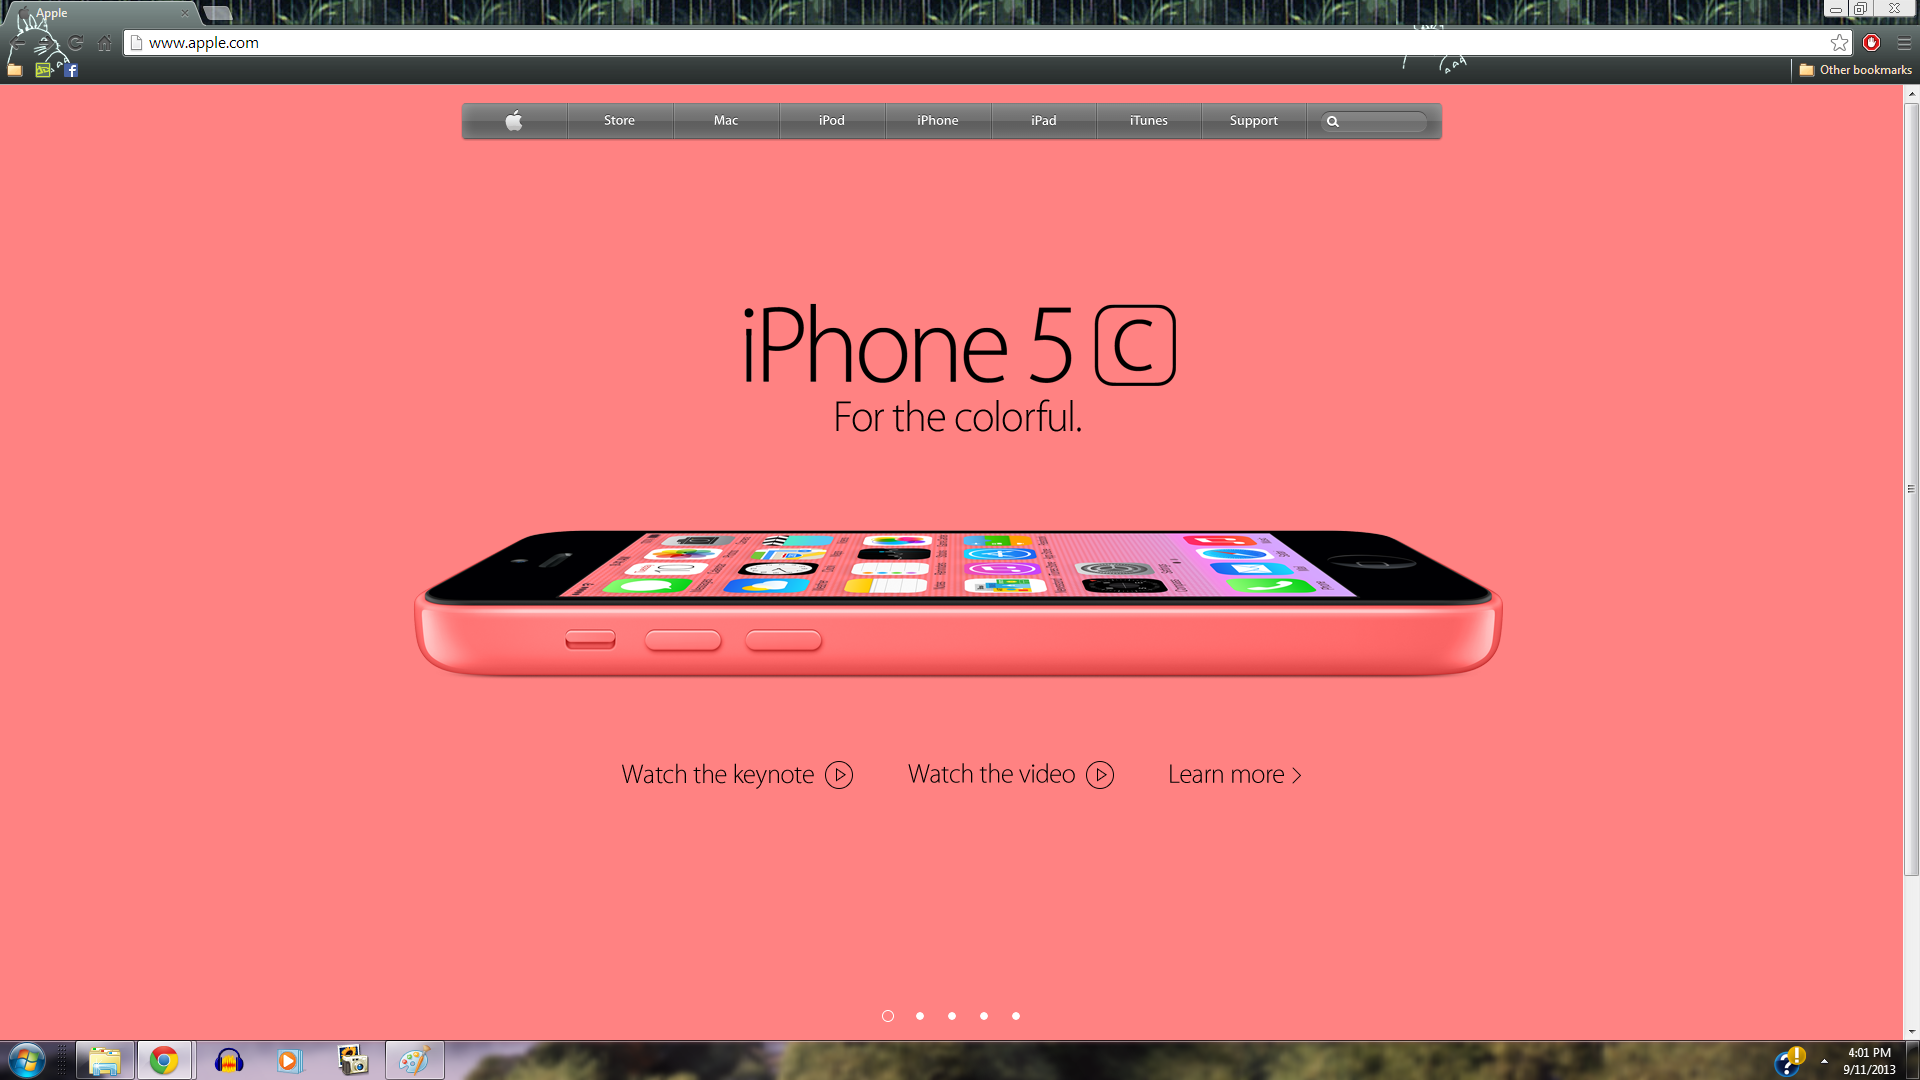 iphone images iphone 5c pink apple homepage hd wallpaper